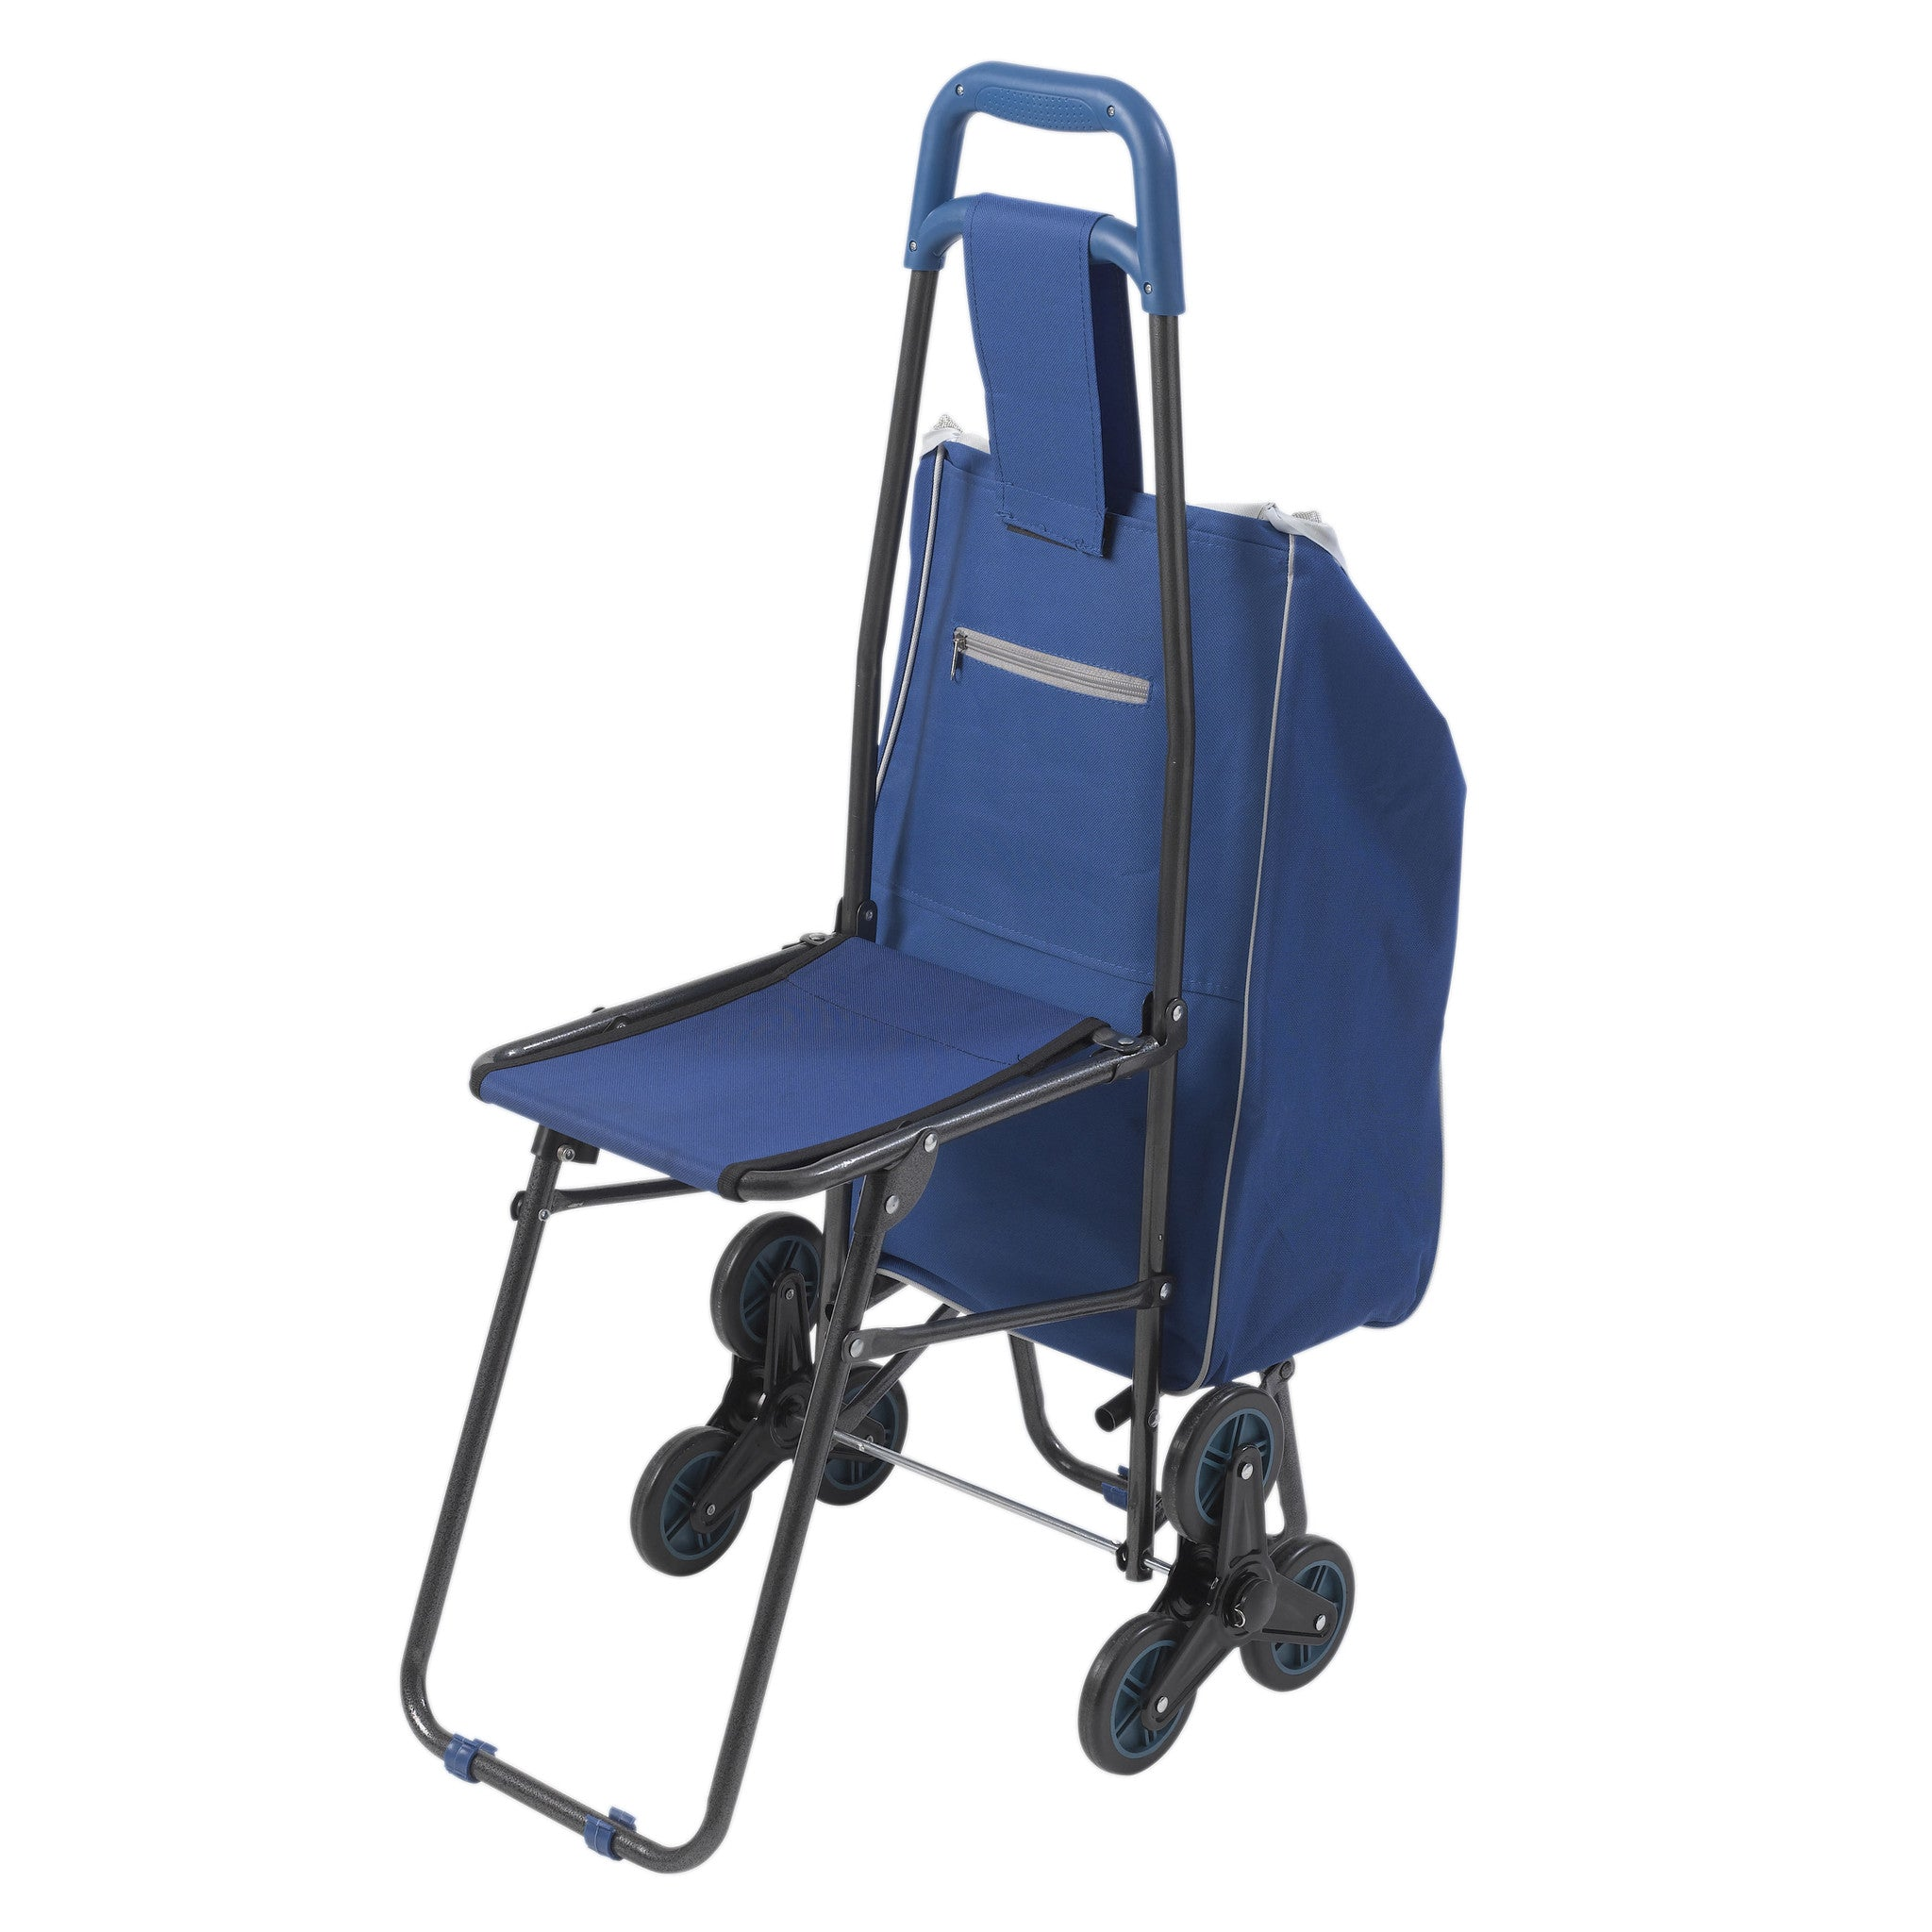 Deluxe Rolling Shopping Cart with Seat | CSA Medical Supply